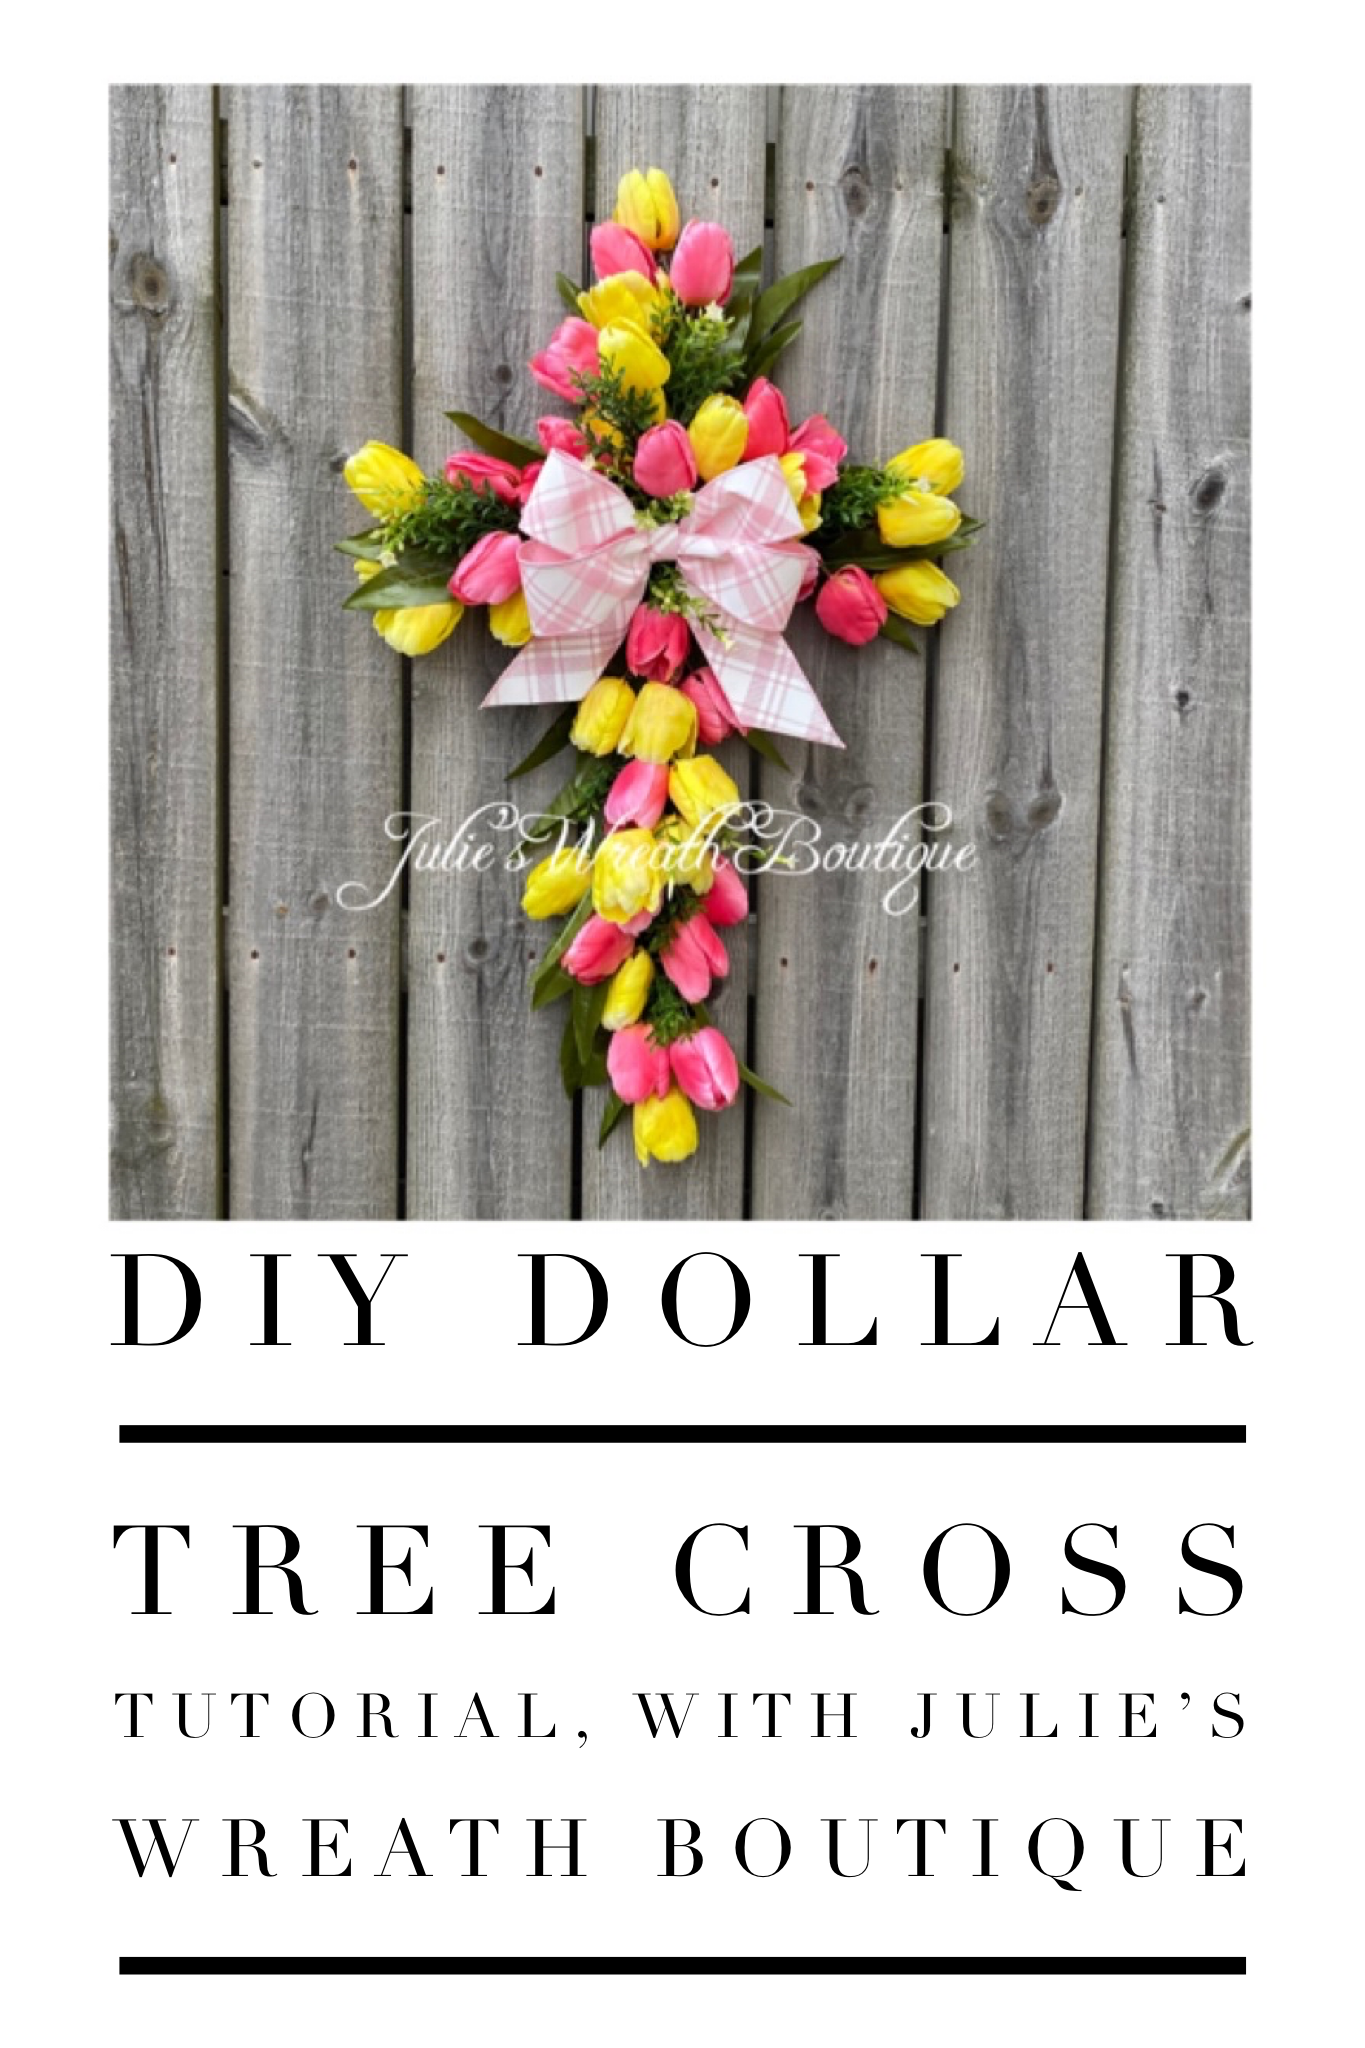 Make your own wreath with a Dollar Tree Cross Frame. DIY